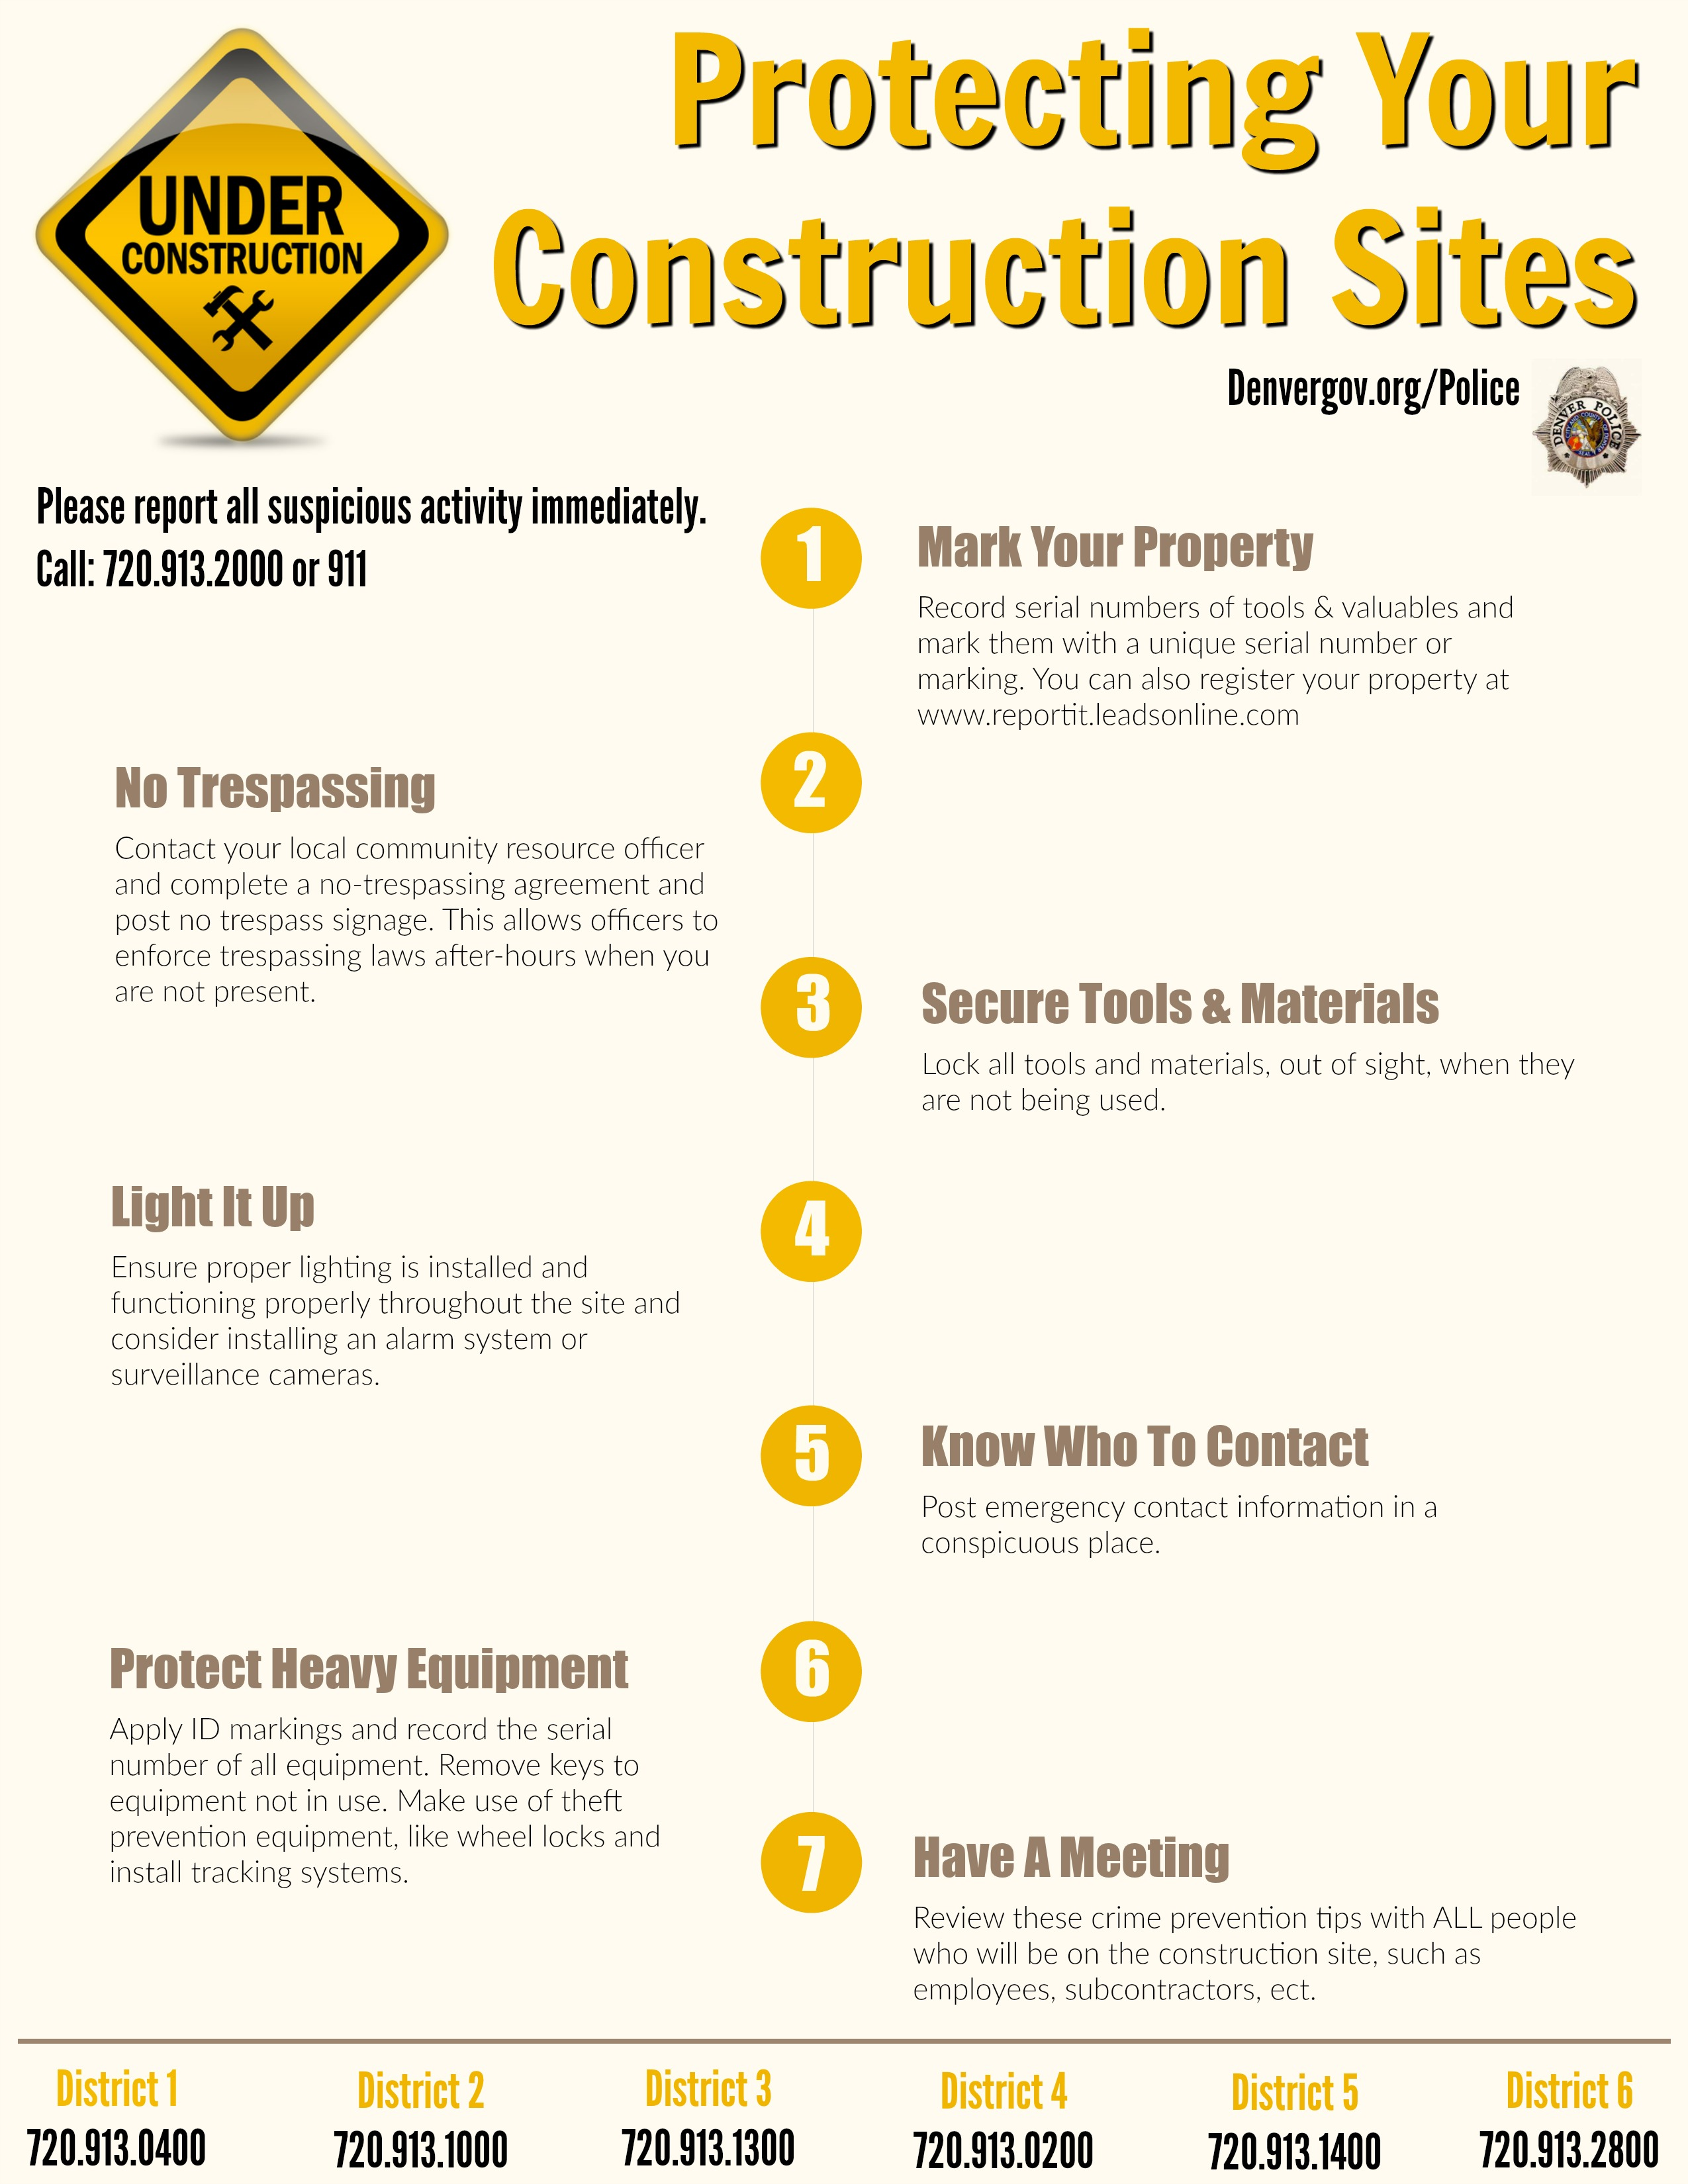 Basic Construction Rules For Contractors And Neighbors To Know